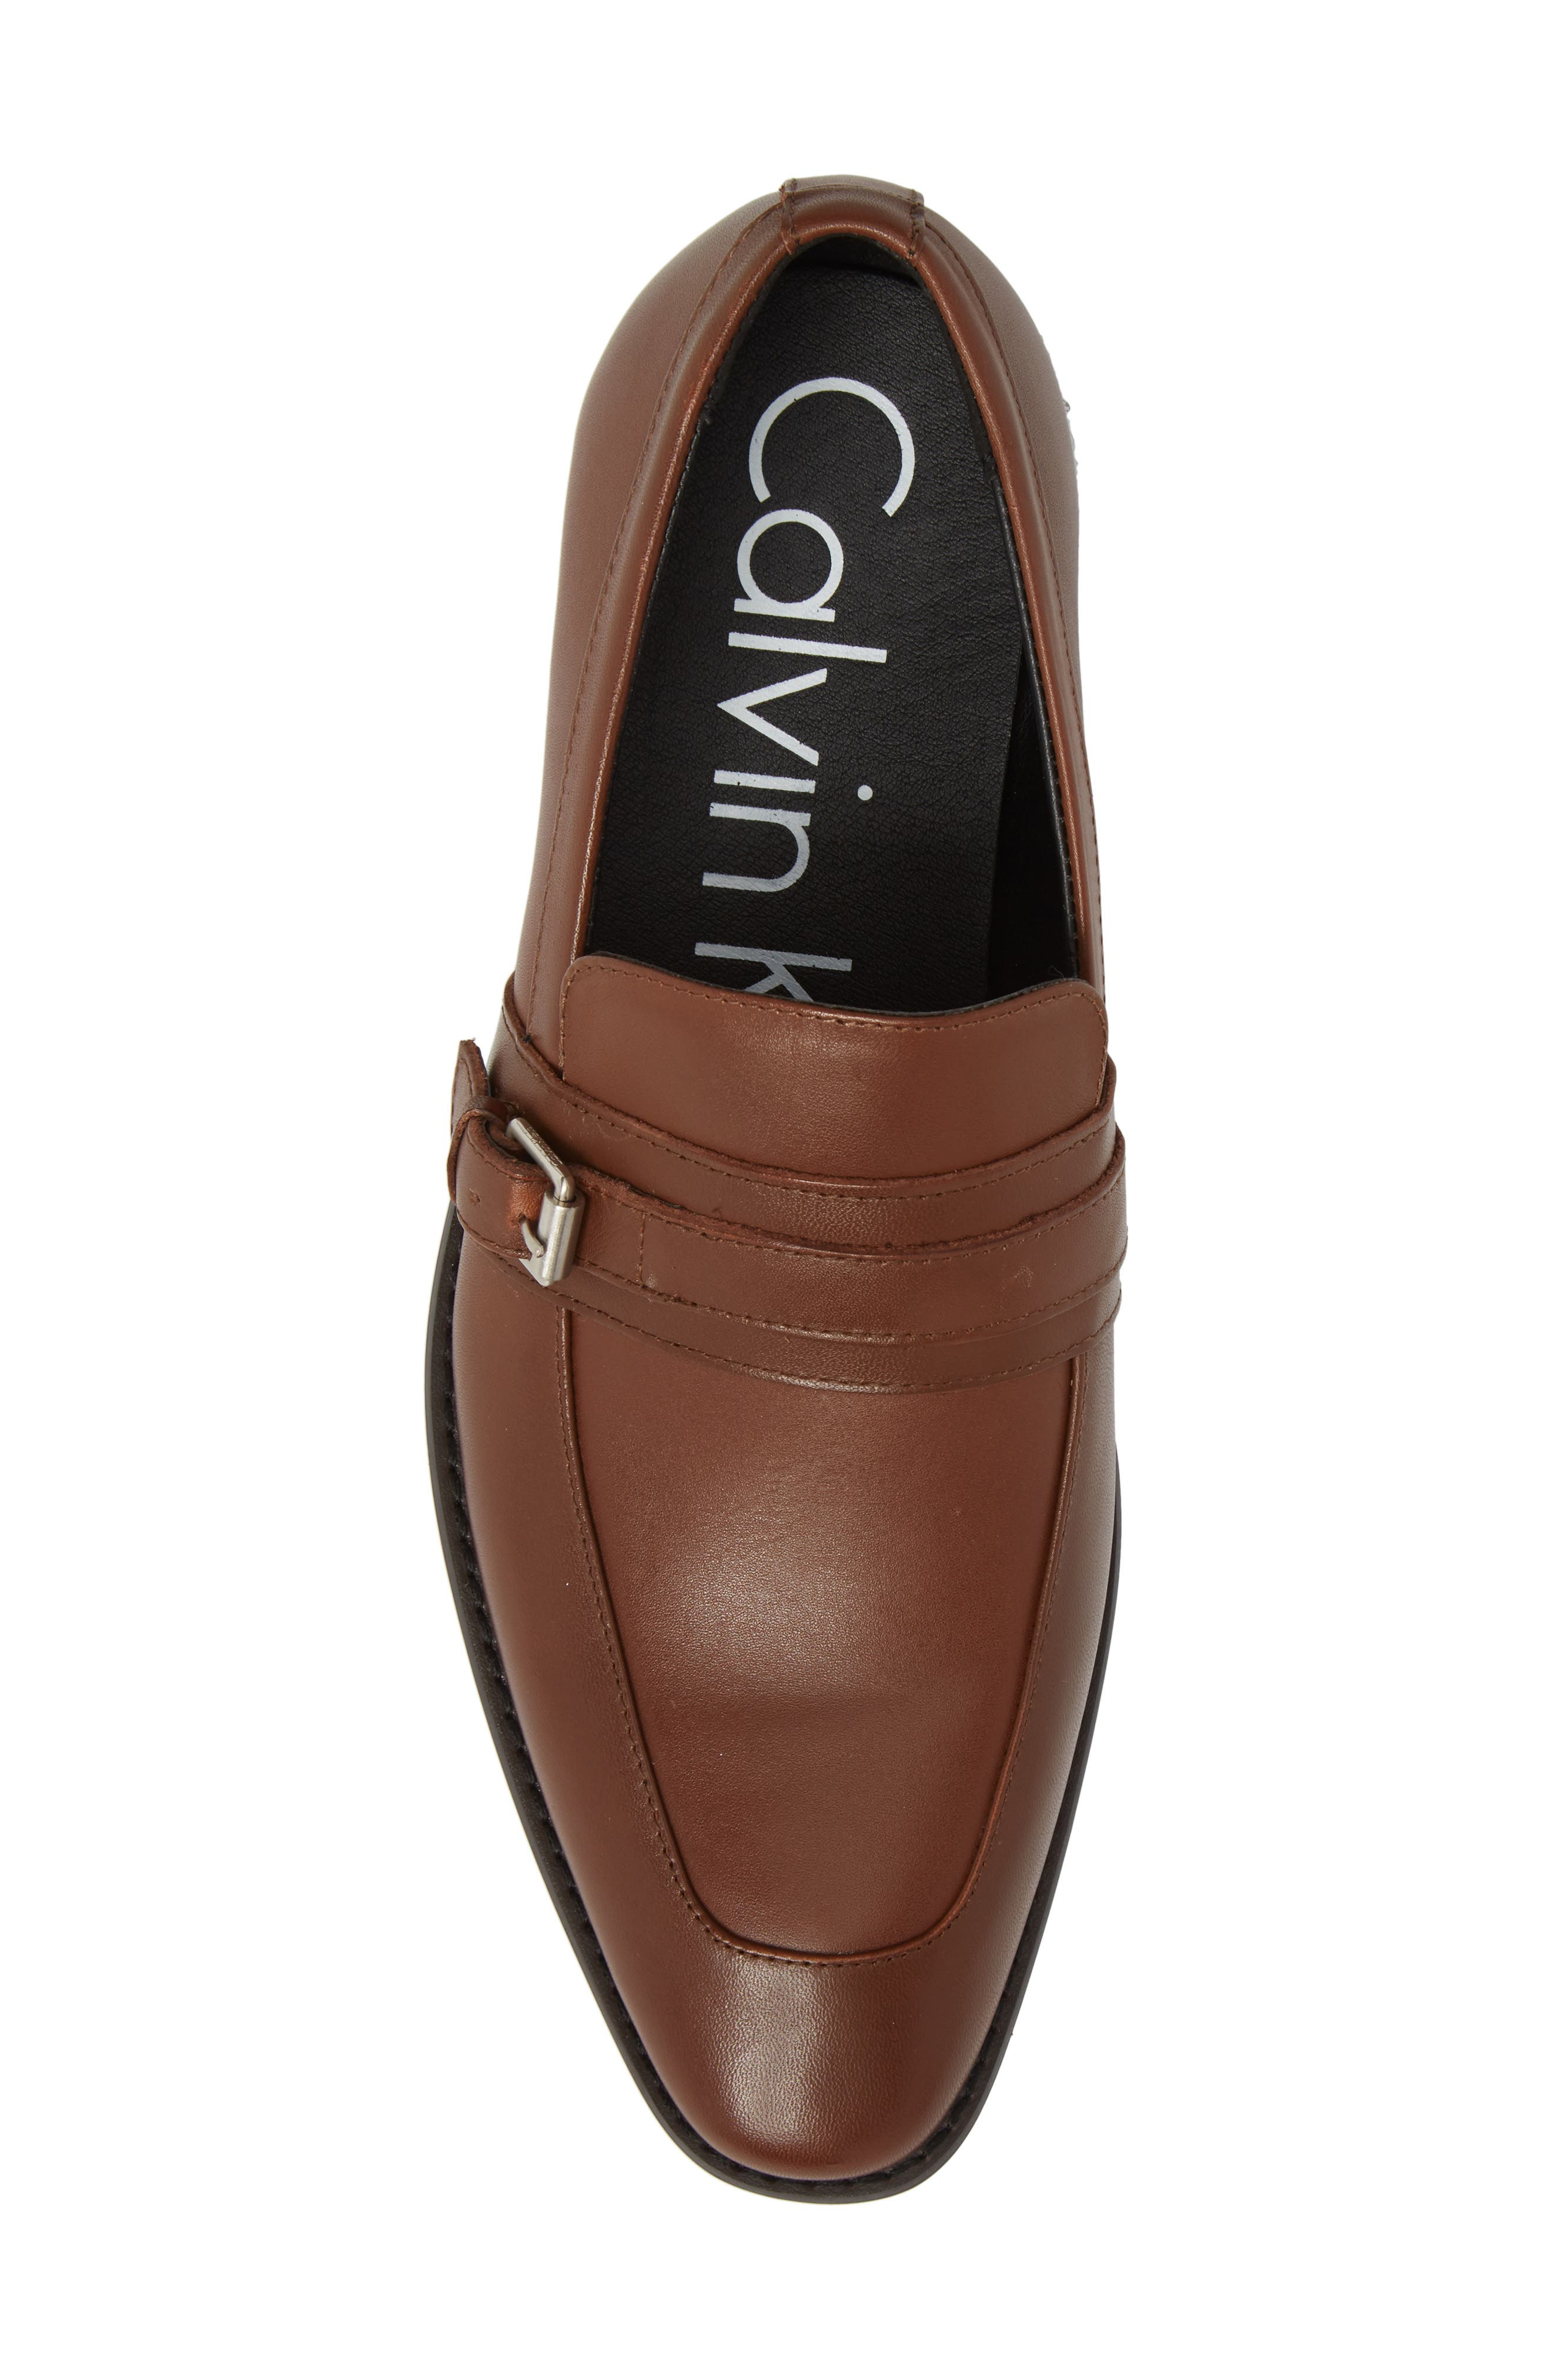 Reyes Loafer,                             Alternate thumbnail 5, color,                             Tan Leather